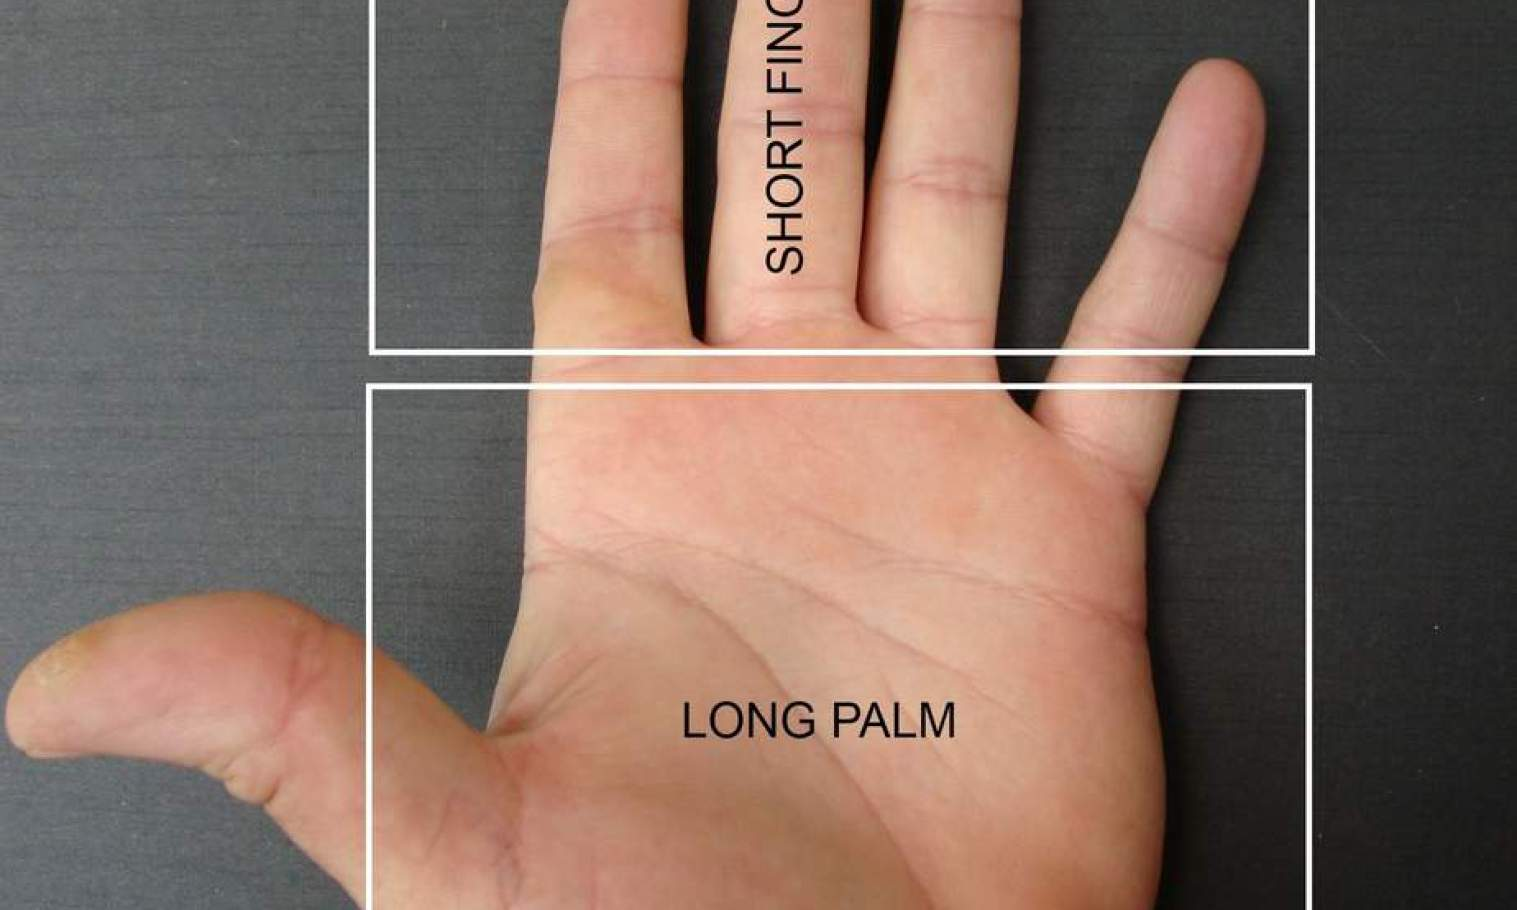 fire shaped hand, short fingers, large palm. career in palms, career choices, finger length